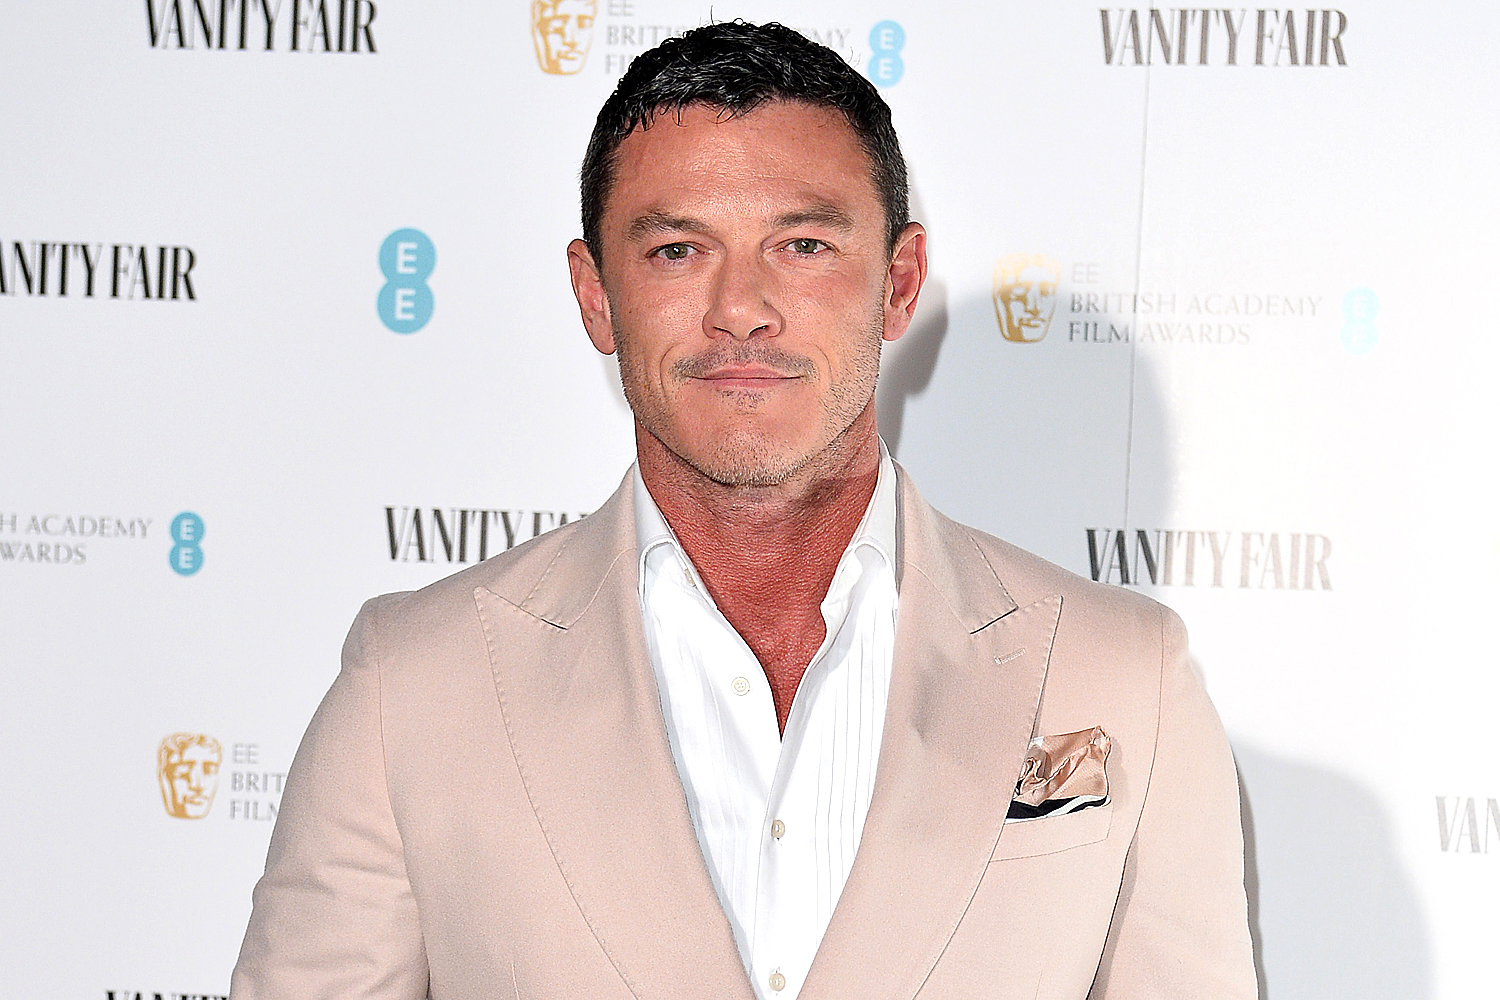 Luke Evans Responds to Claims He Was 'Hiding' Sexuality | PEOPLE.com